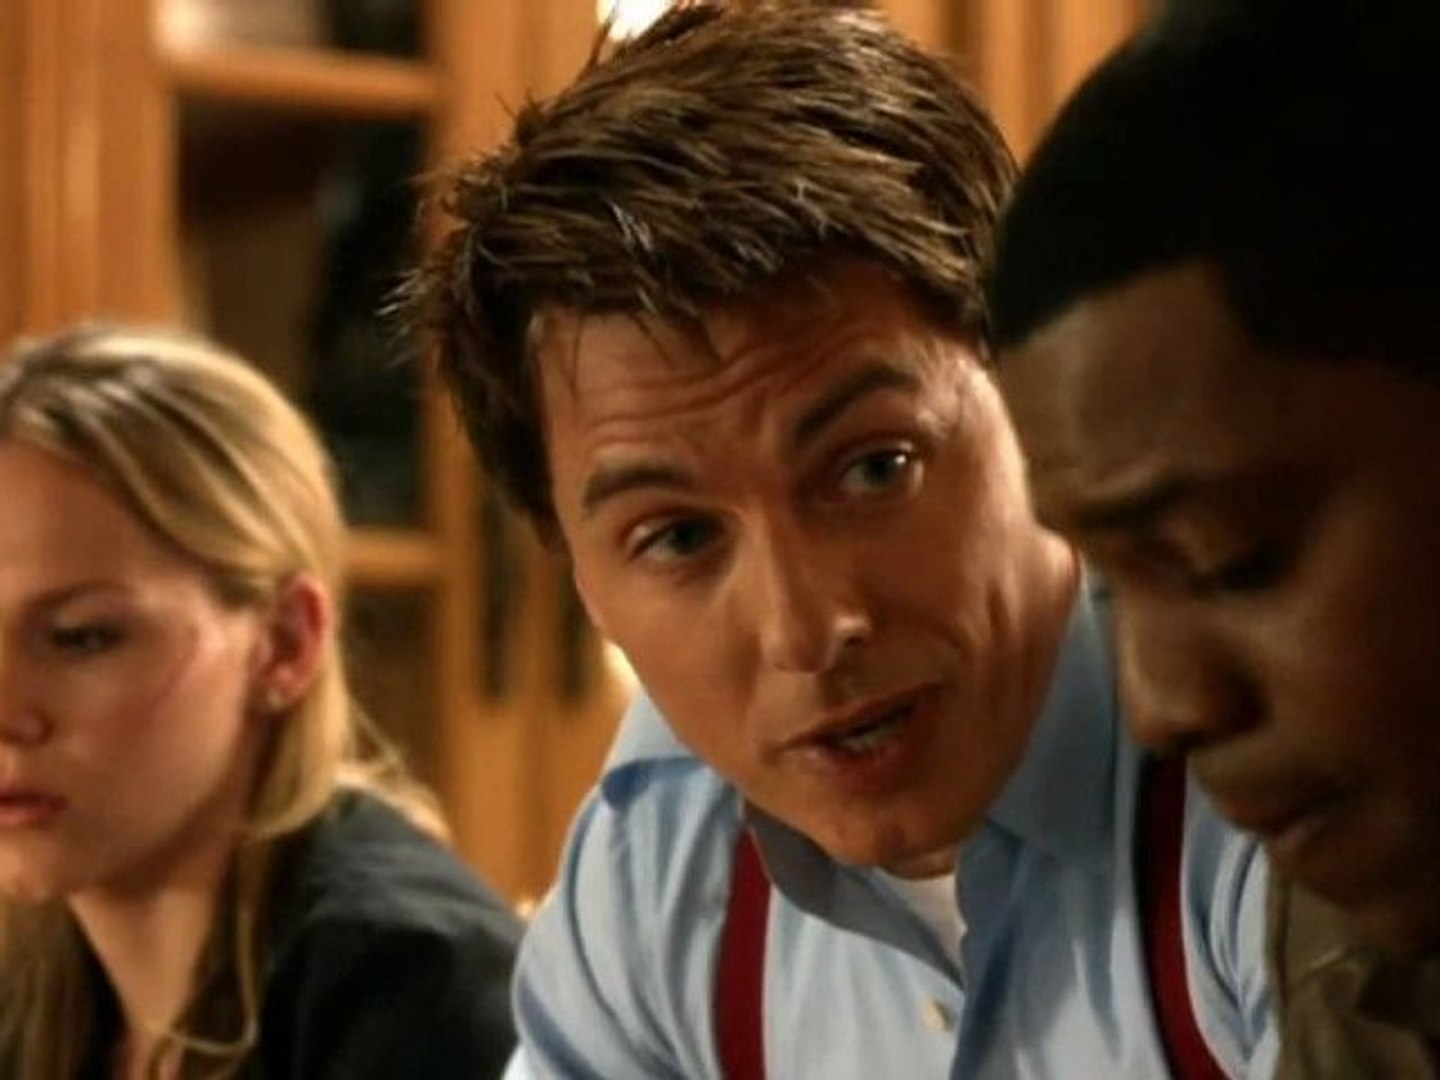 Torchwood: Miracle Day 1 08/4 08 End of the Road - BBC trailer/teaser